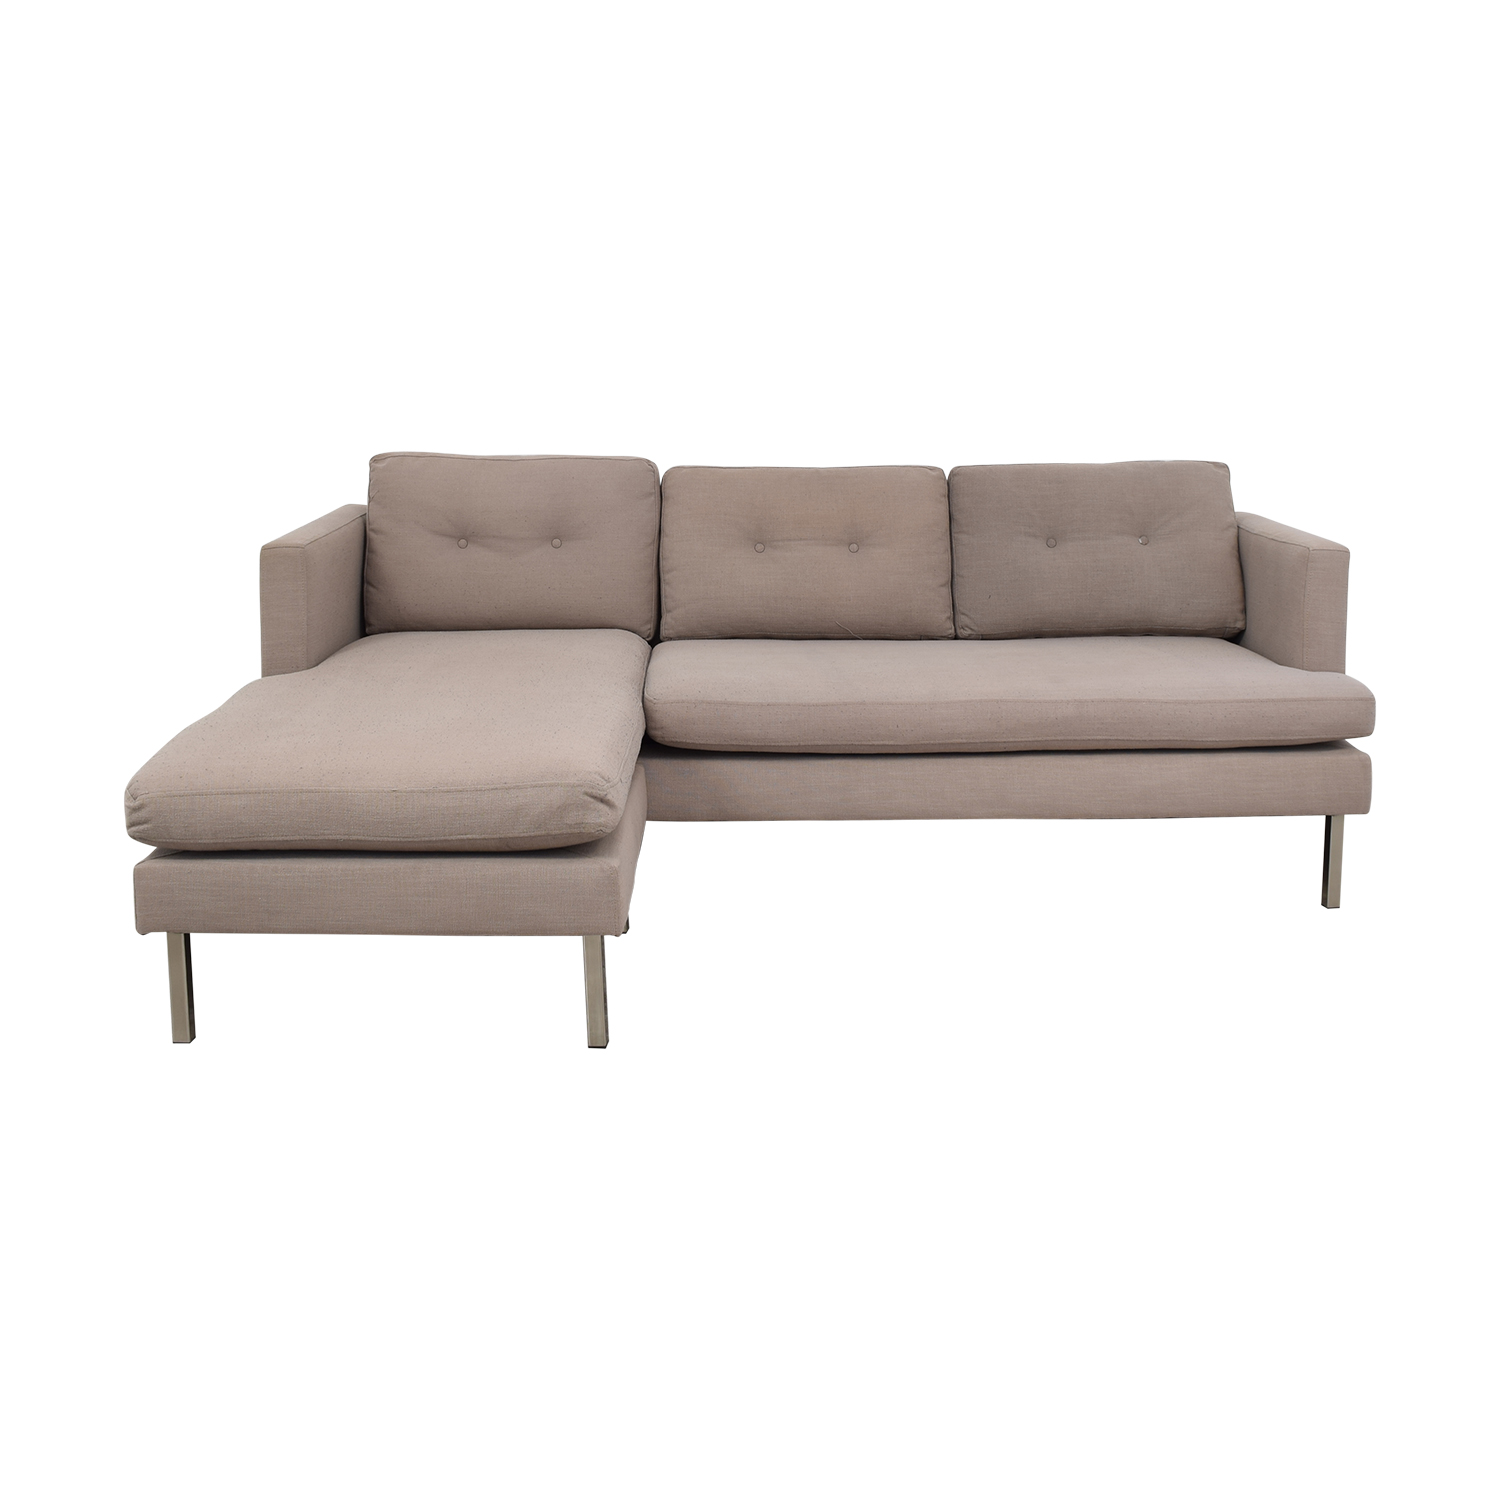 West Elm West Elm Marco Two-Piece Sectional Sofa in Chenille Tweed dimensions